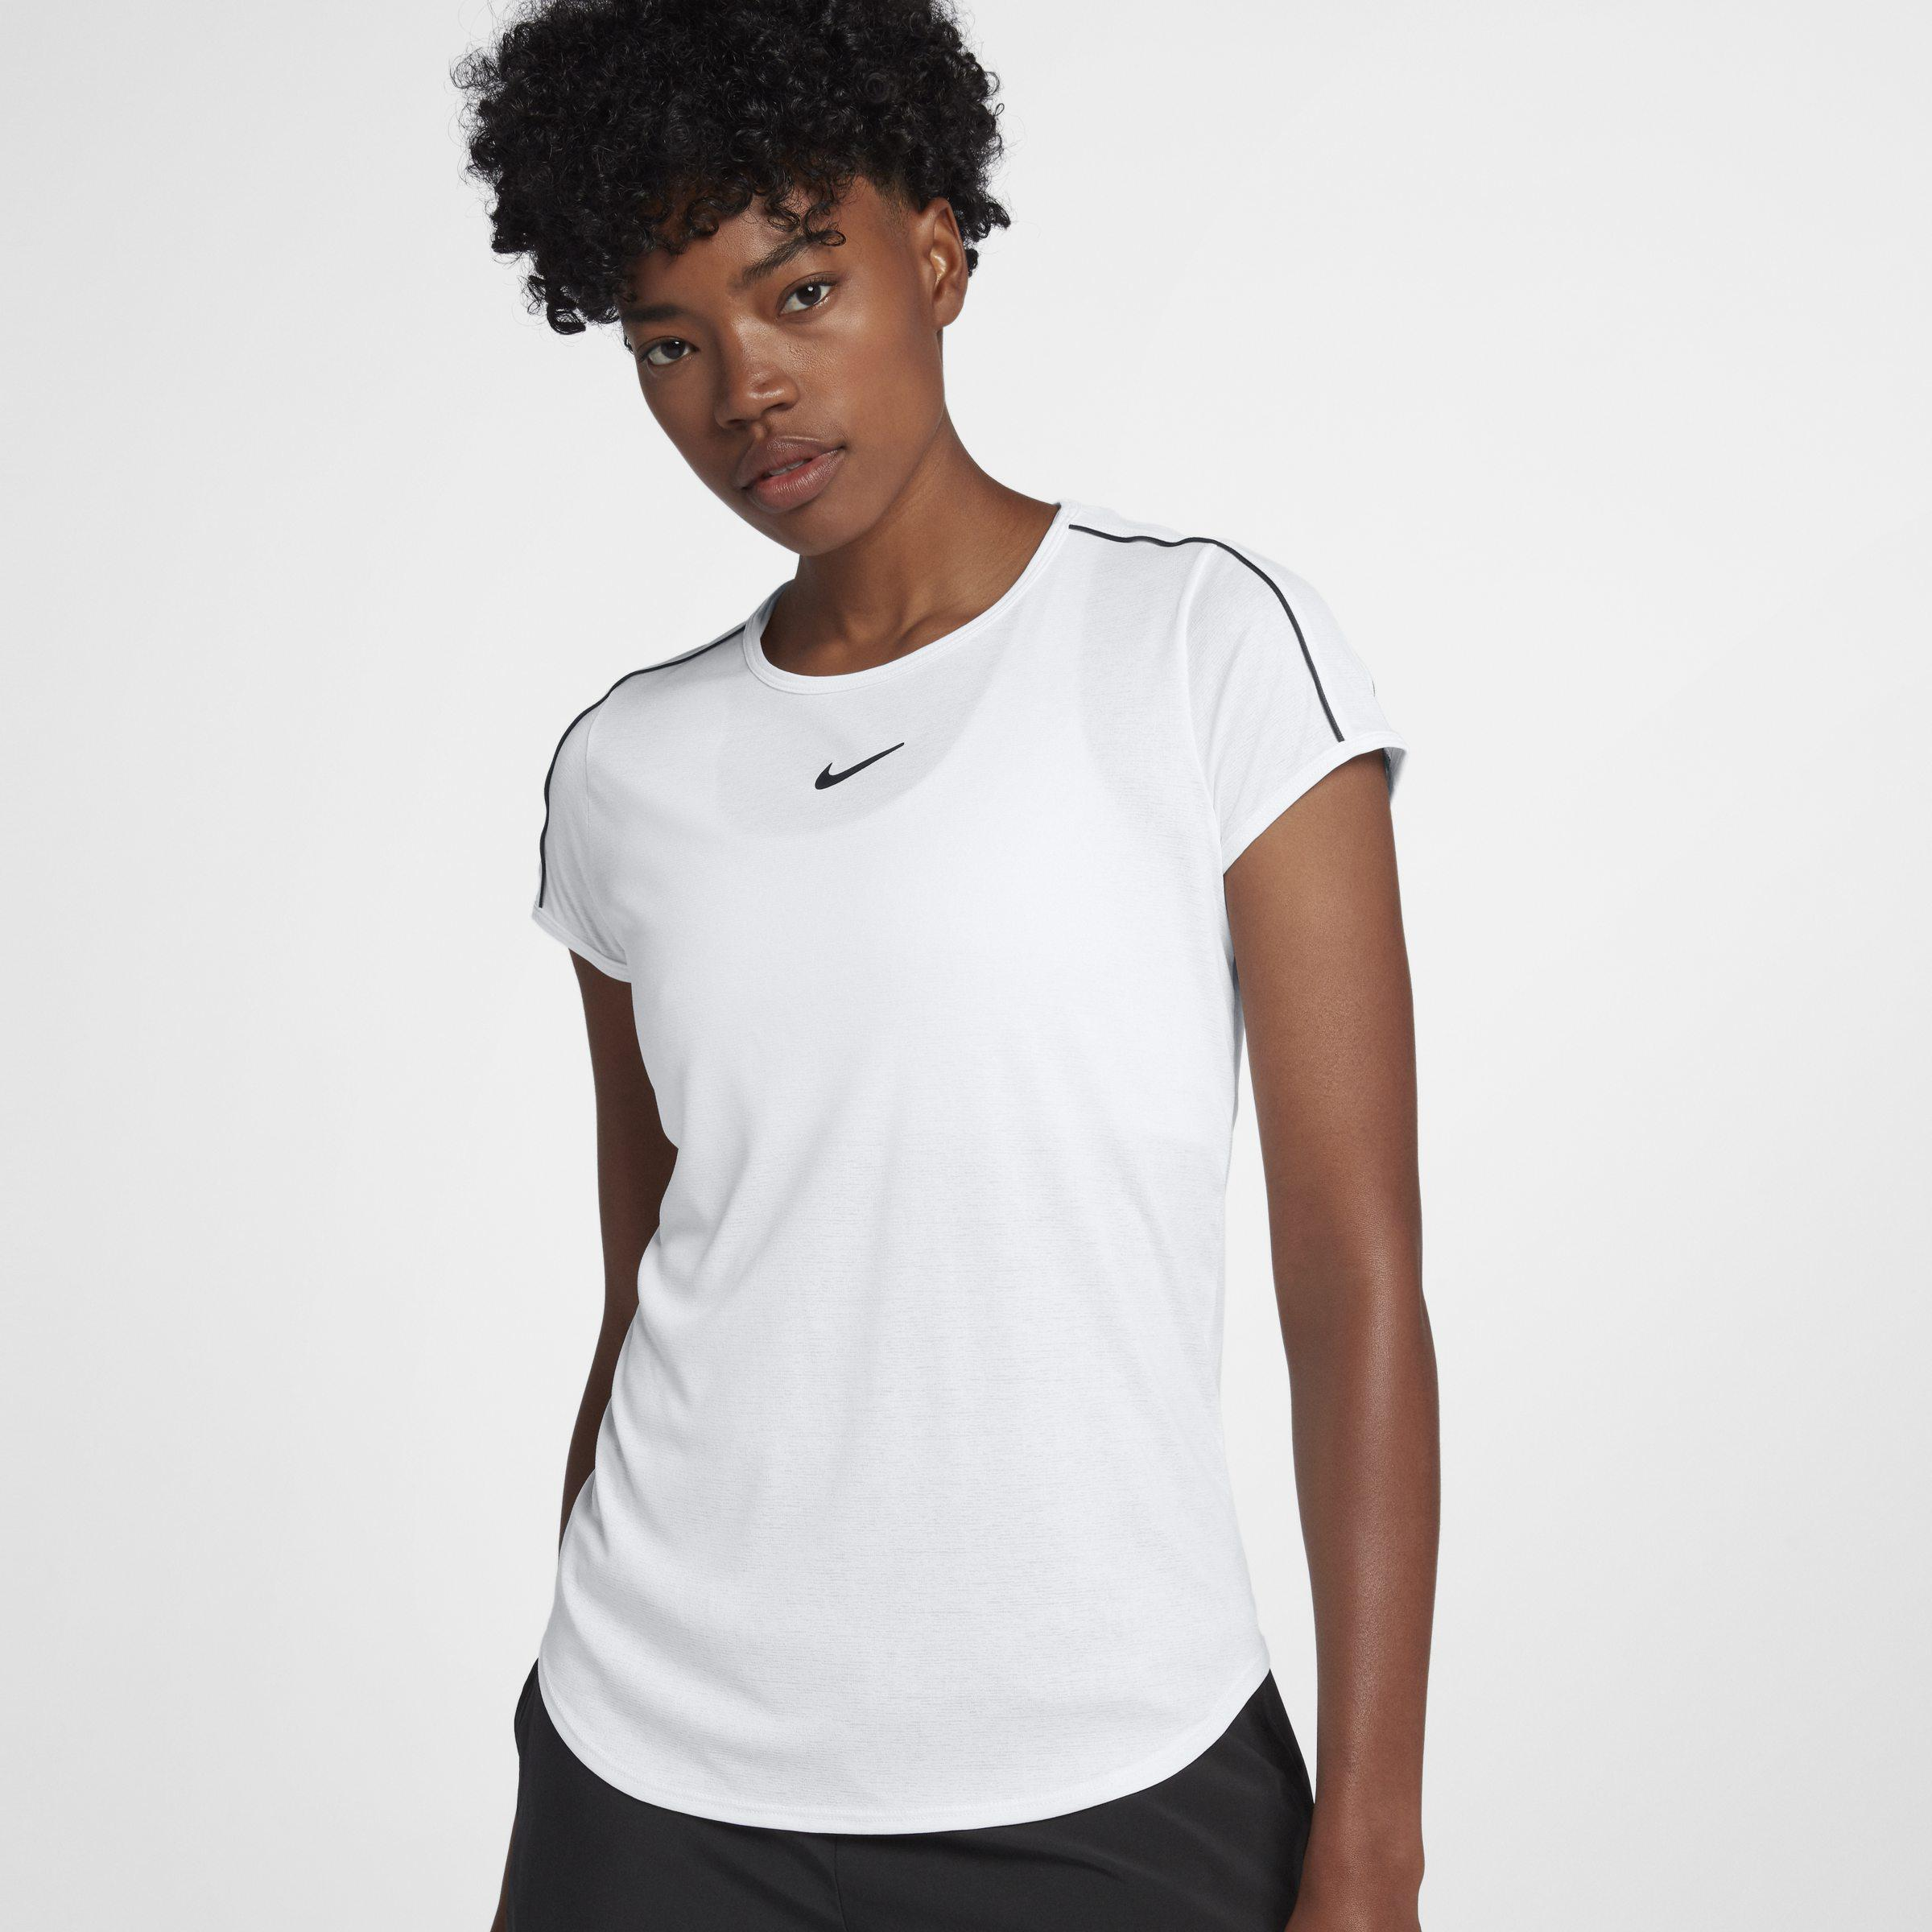 51971941a25d Nike Court Dri-fit Short-sleeve Tennis Top in White - Lyst